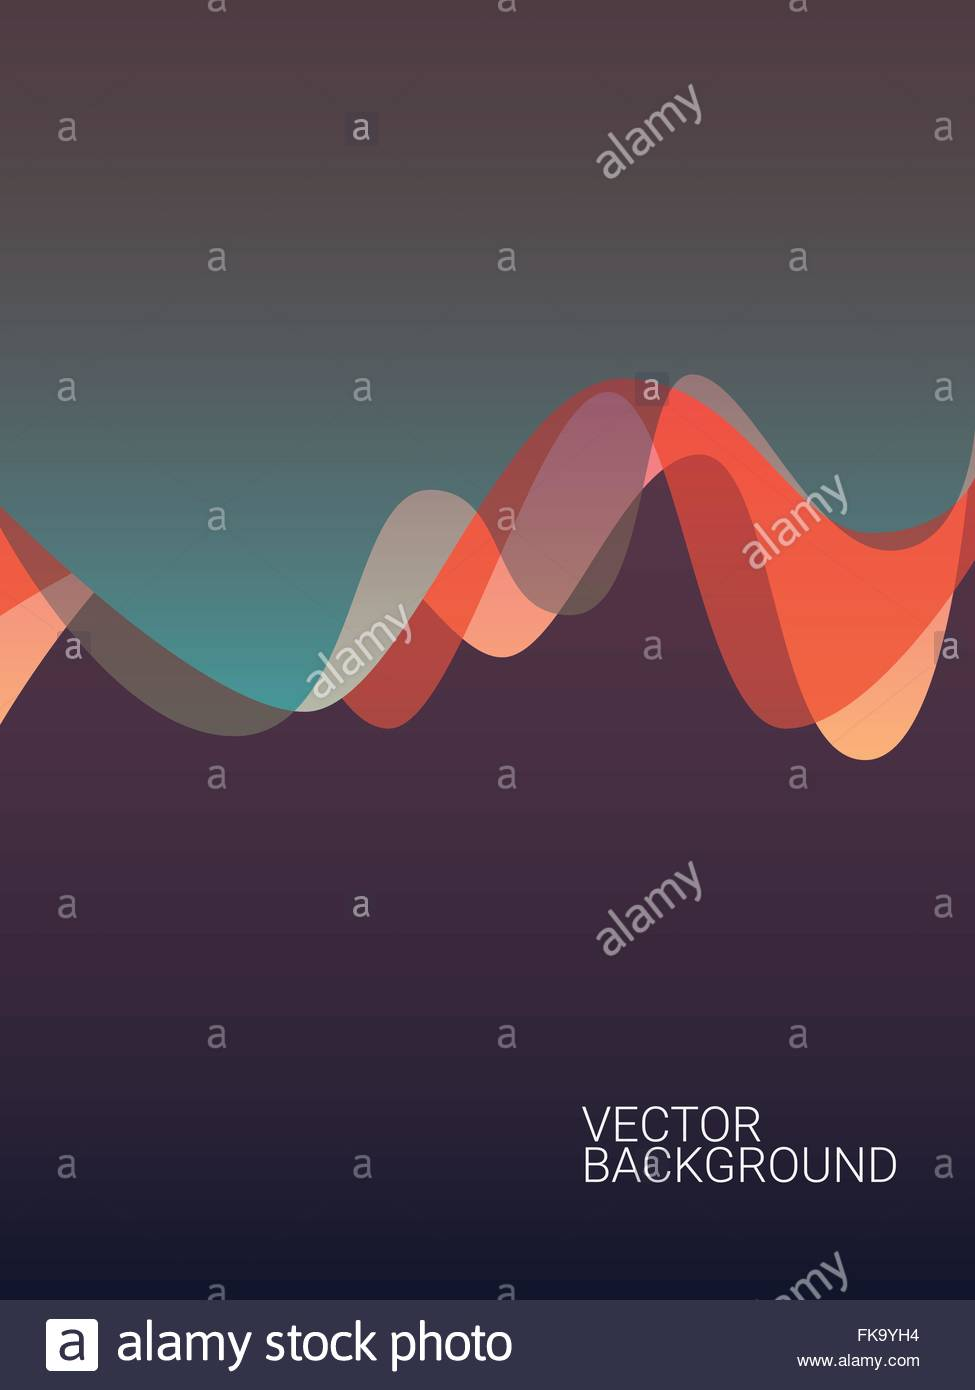 Abstract colorful background with overlay waves  Suitable